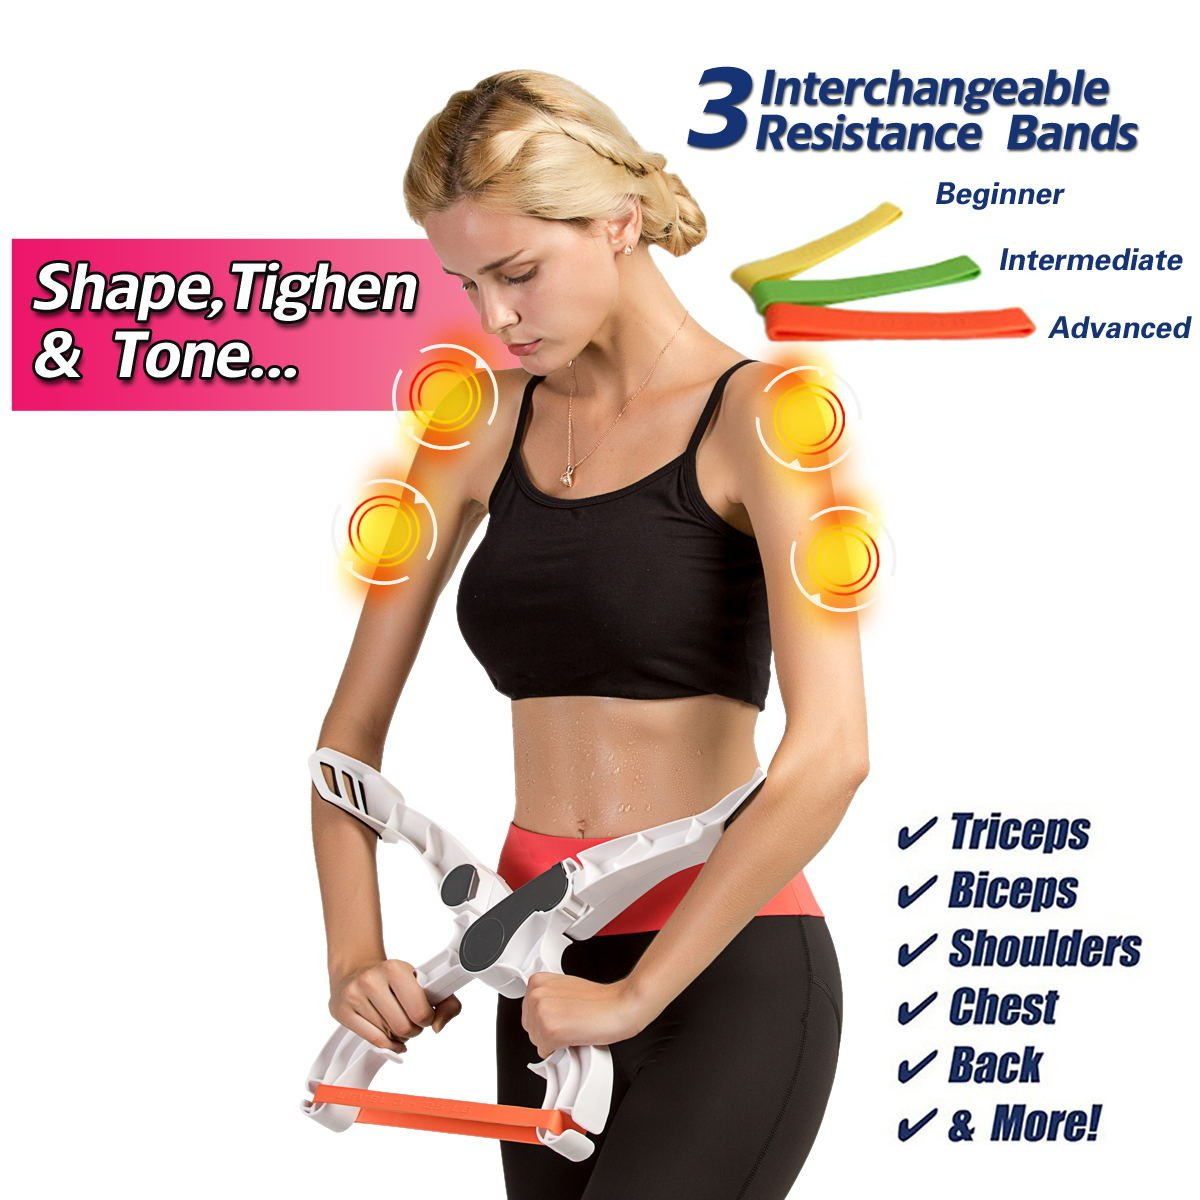 Workout With Bands For Arms: Women Arm And Shoulders Band Exerciser Upper Body Workout